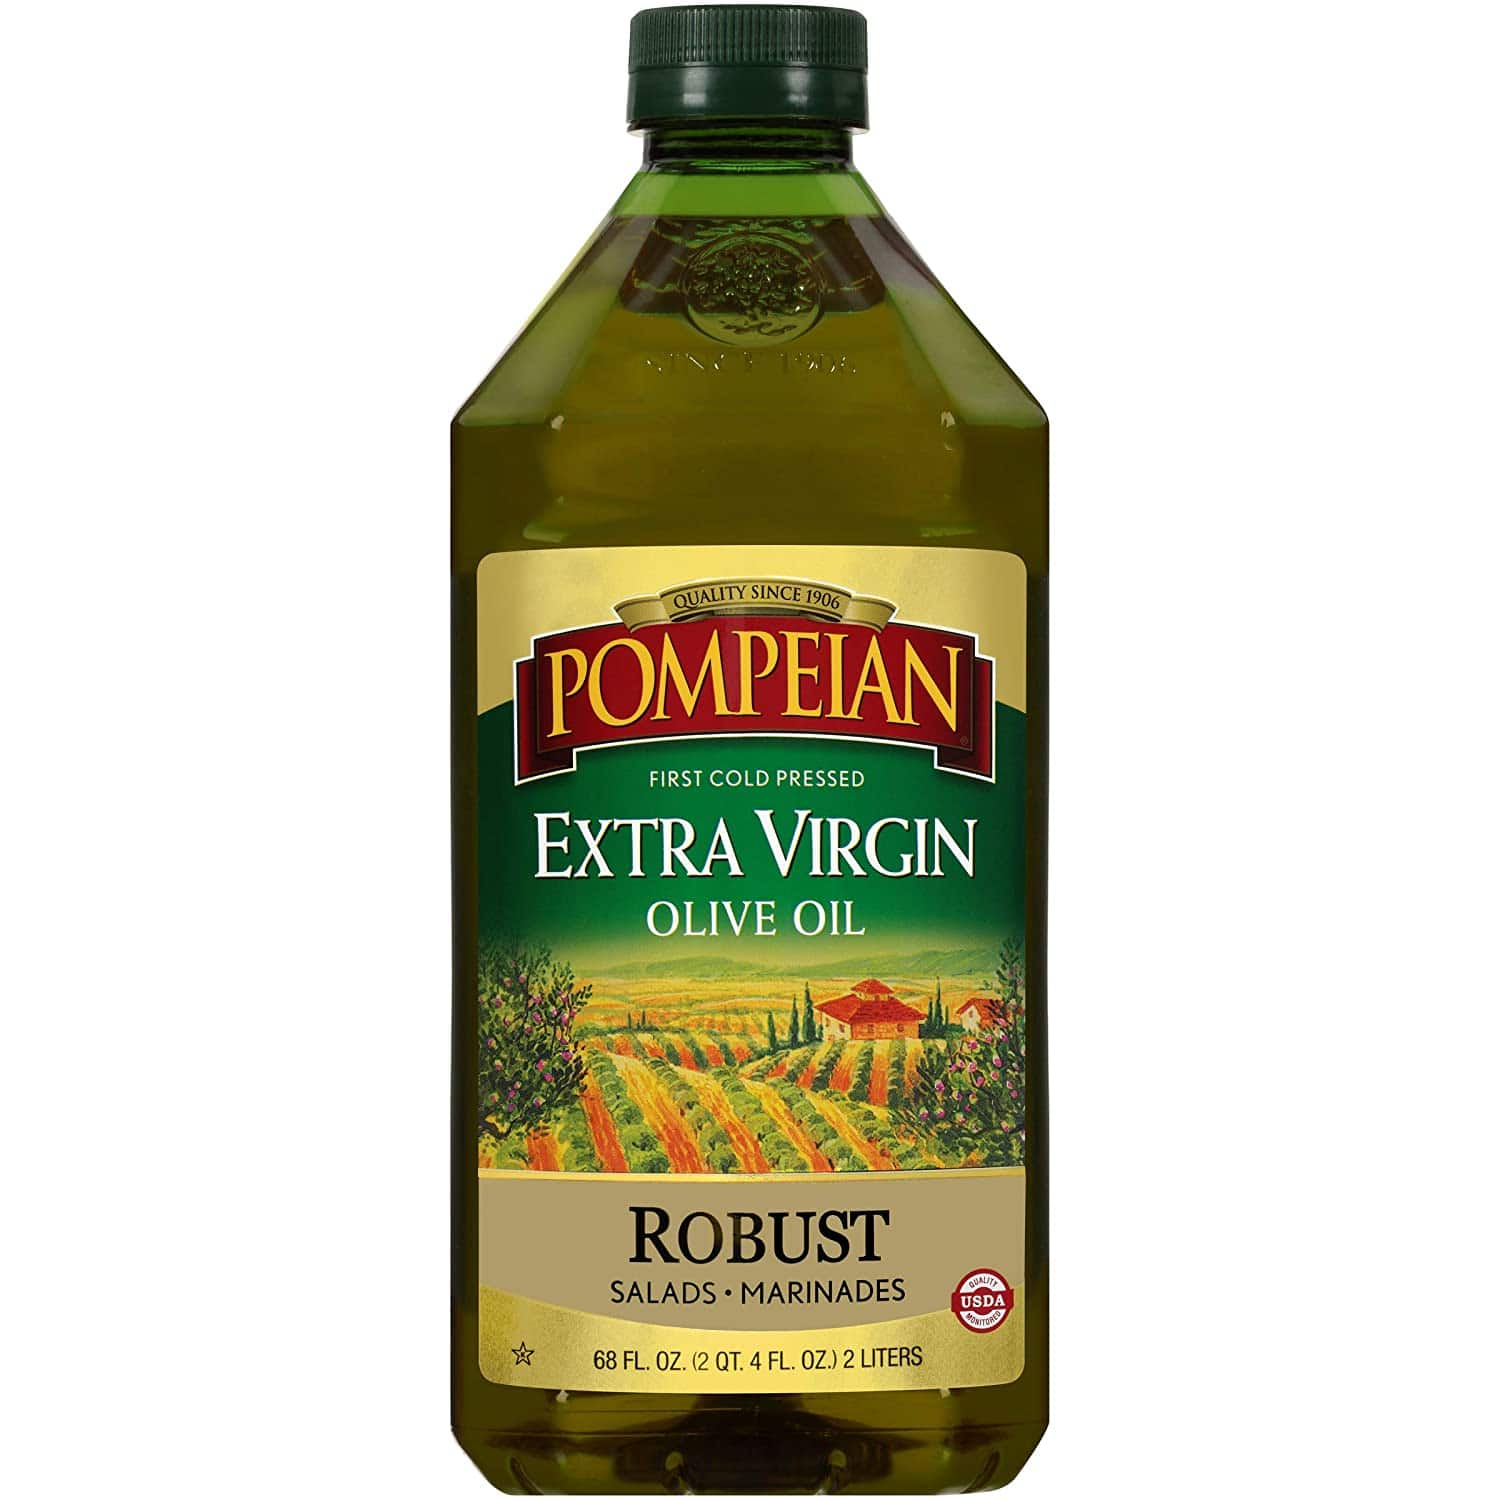 Pompeian Robust Extra Virgin Olive Oil, 68 fl oz $10.60 or less with S&S